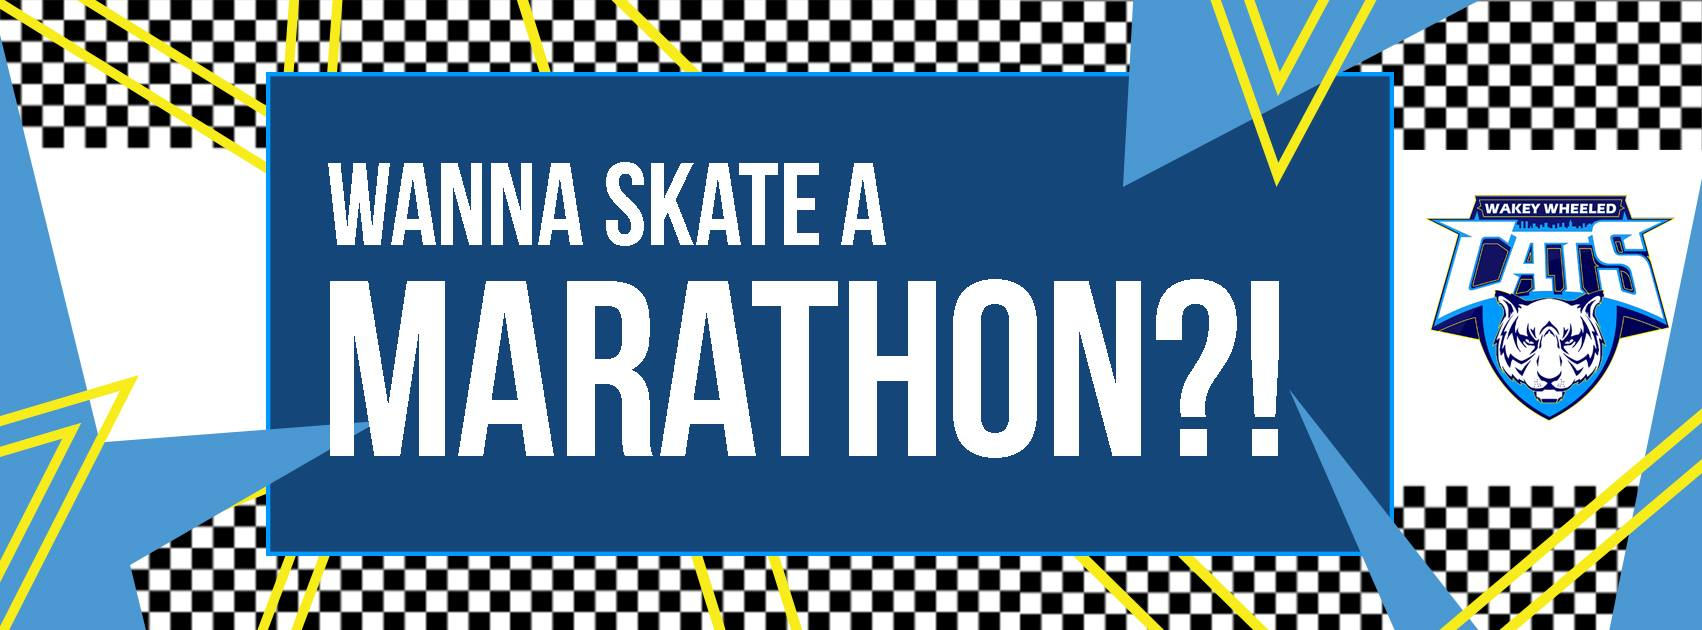 skate marathon west yorkshire